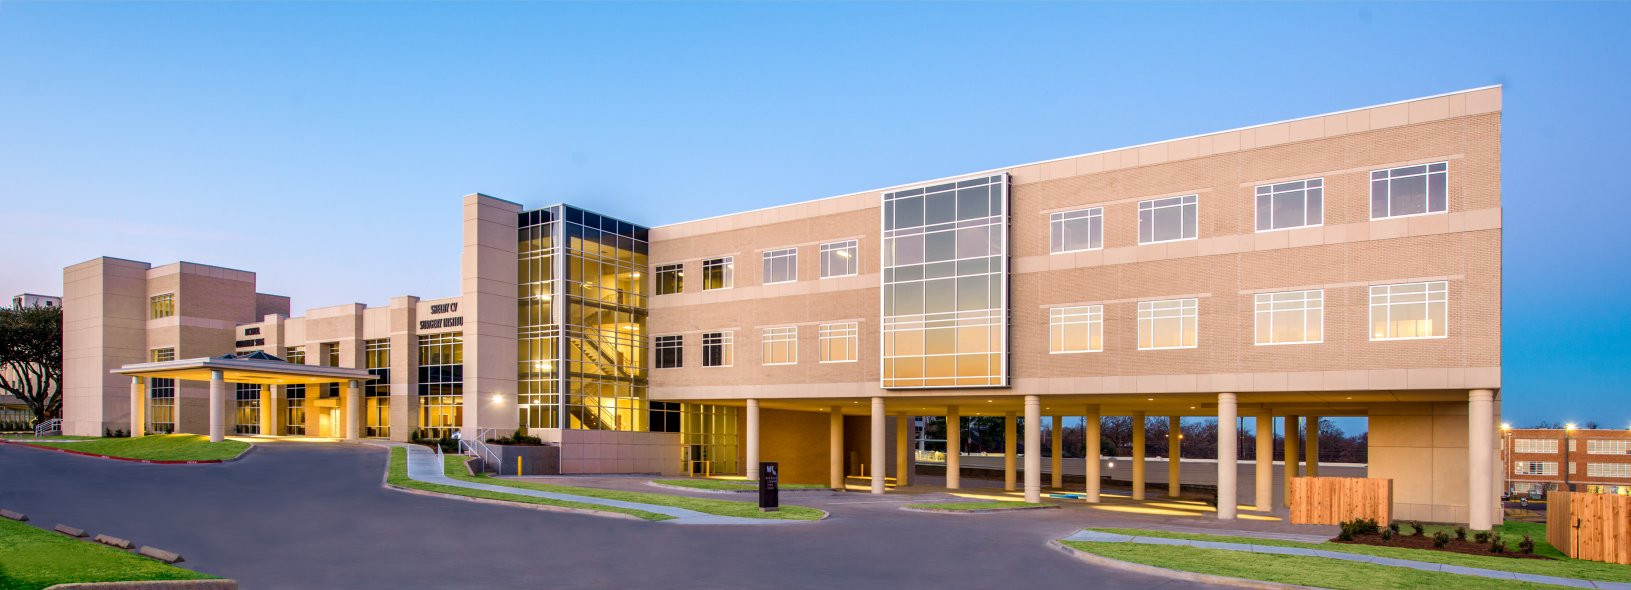 Results are in: TEG ranks 33rd largest healthcare architectural firm in U.S.